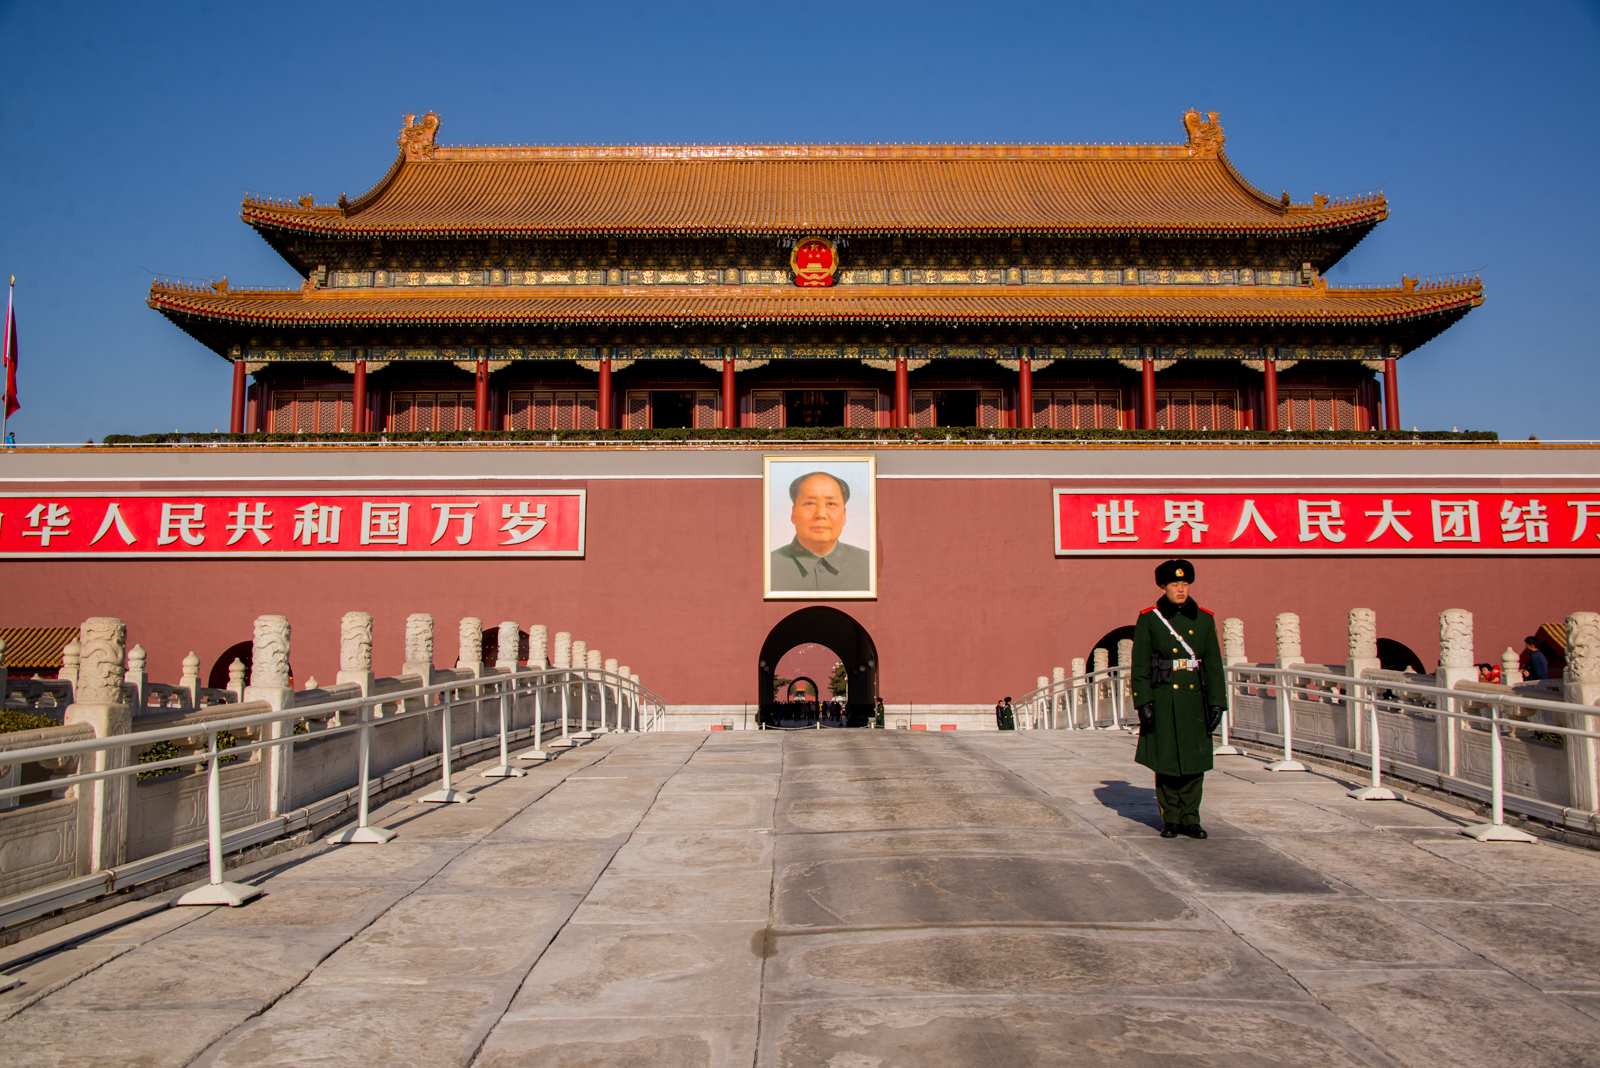 The Forbidden City, built by the Ming Dynasty, still stands as a symbol of power in the heart of Beijing (complete with a giant picture of Mao)